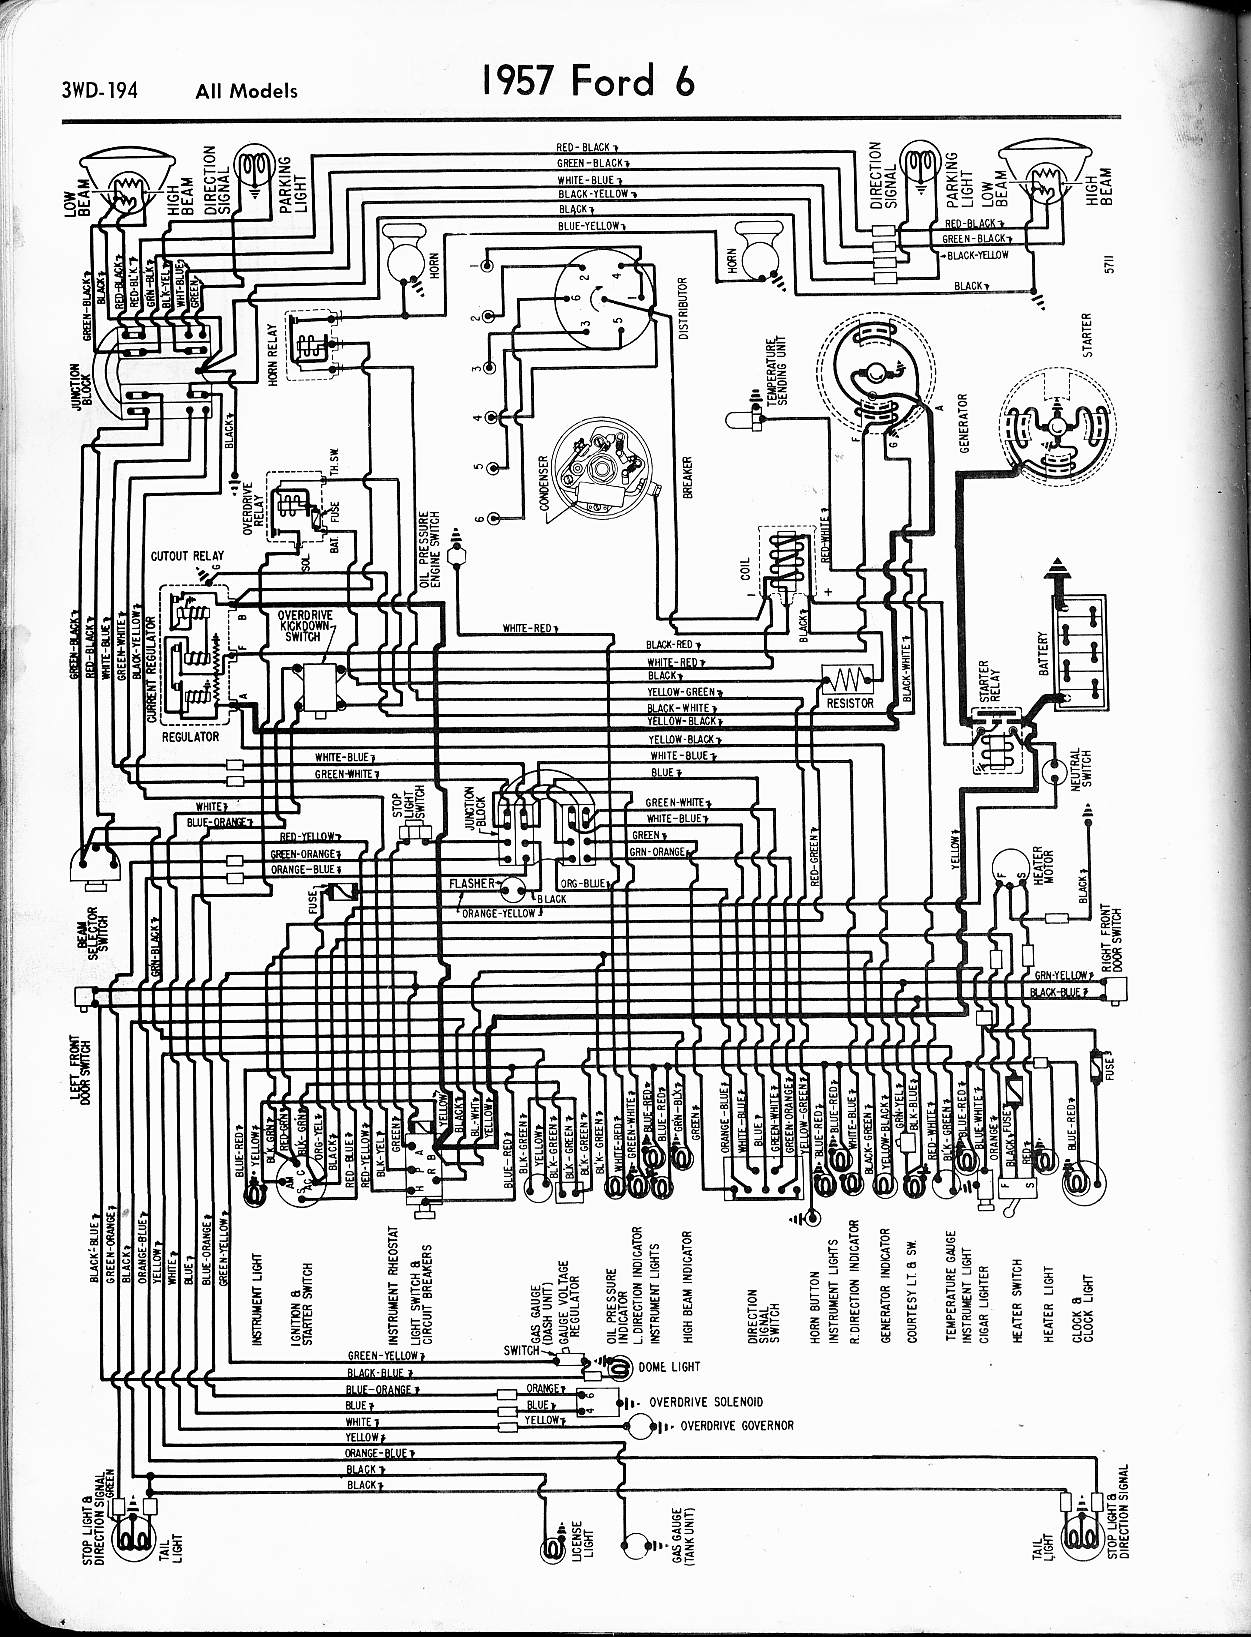 MWire5765 194 57 65 ford wiring diagrams ford truck wiring diagrams free at edmiracle.co